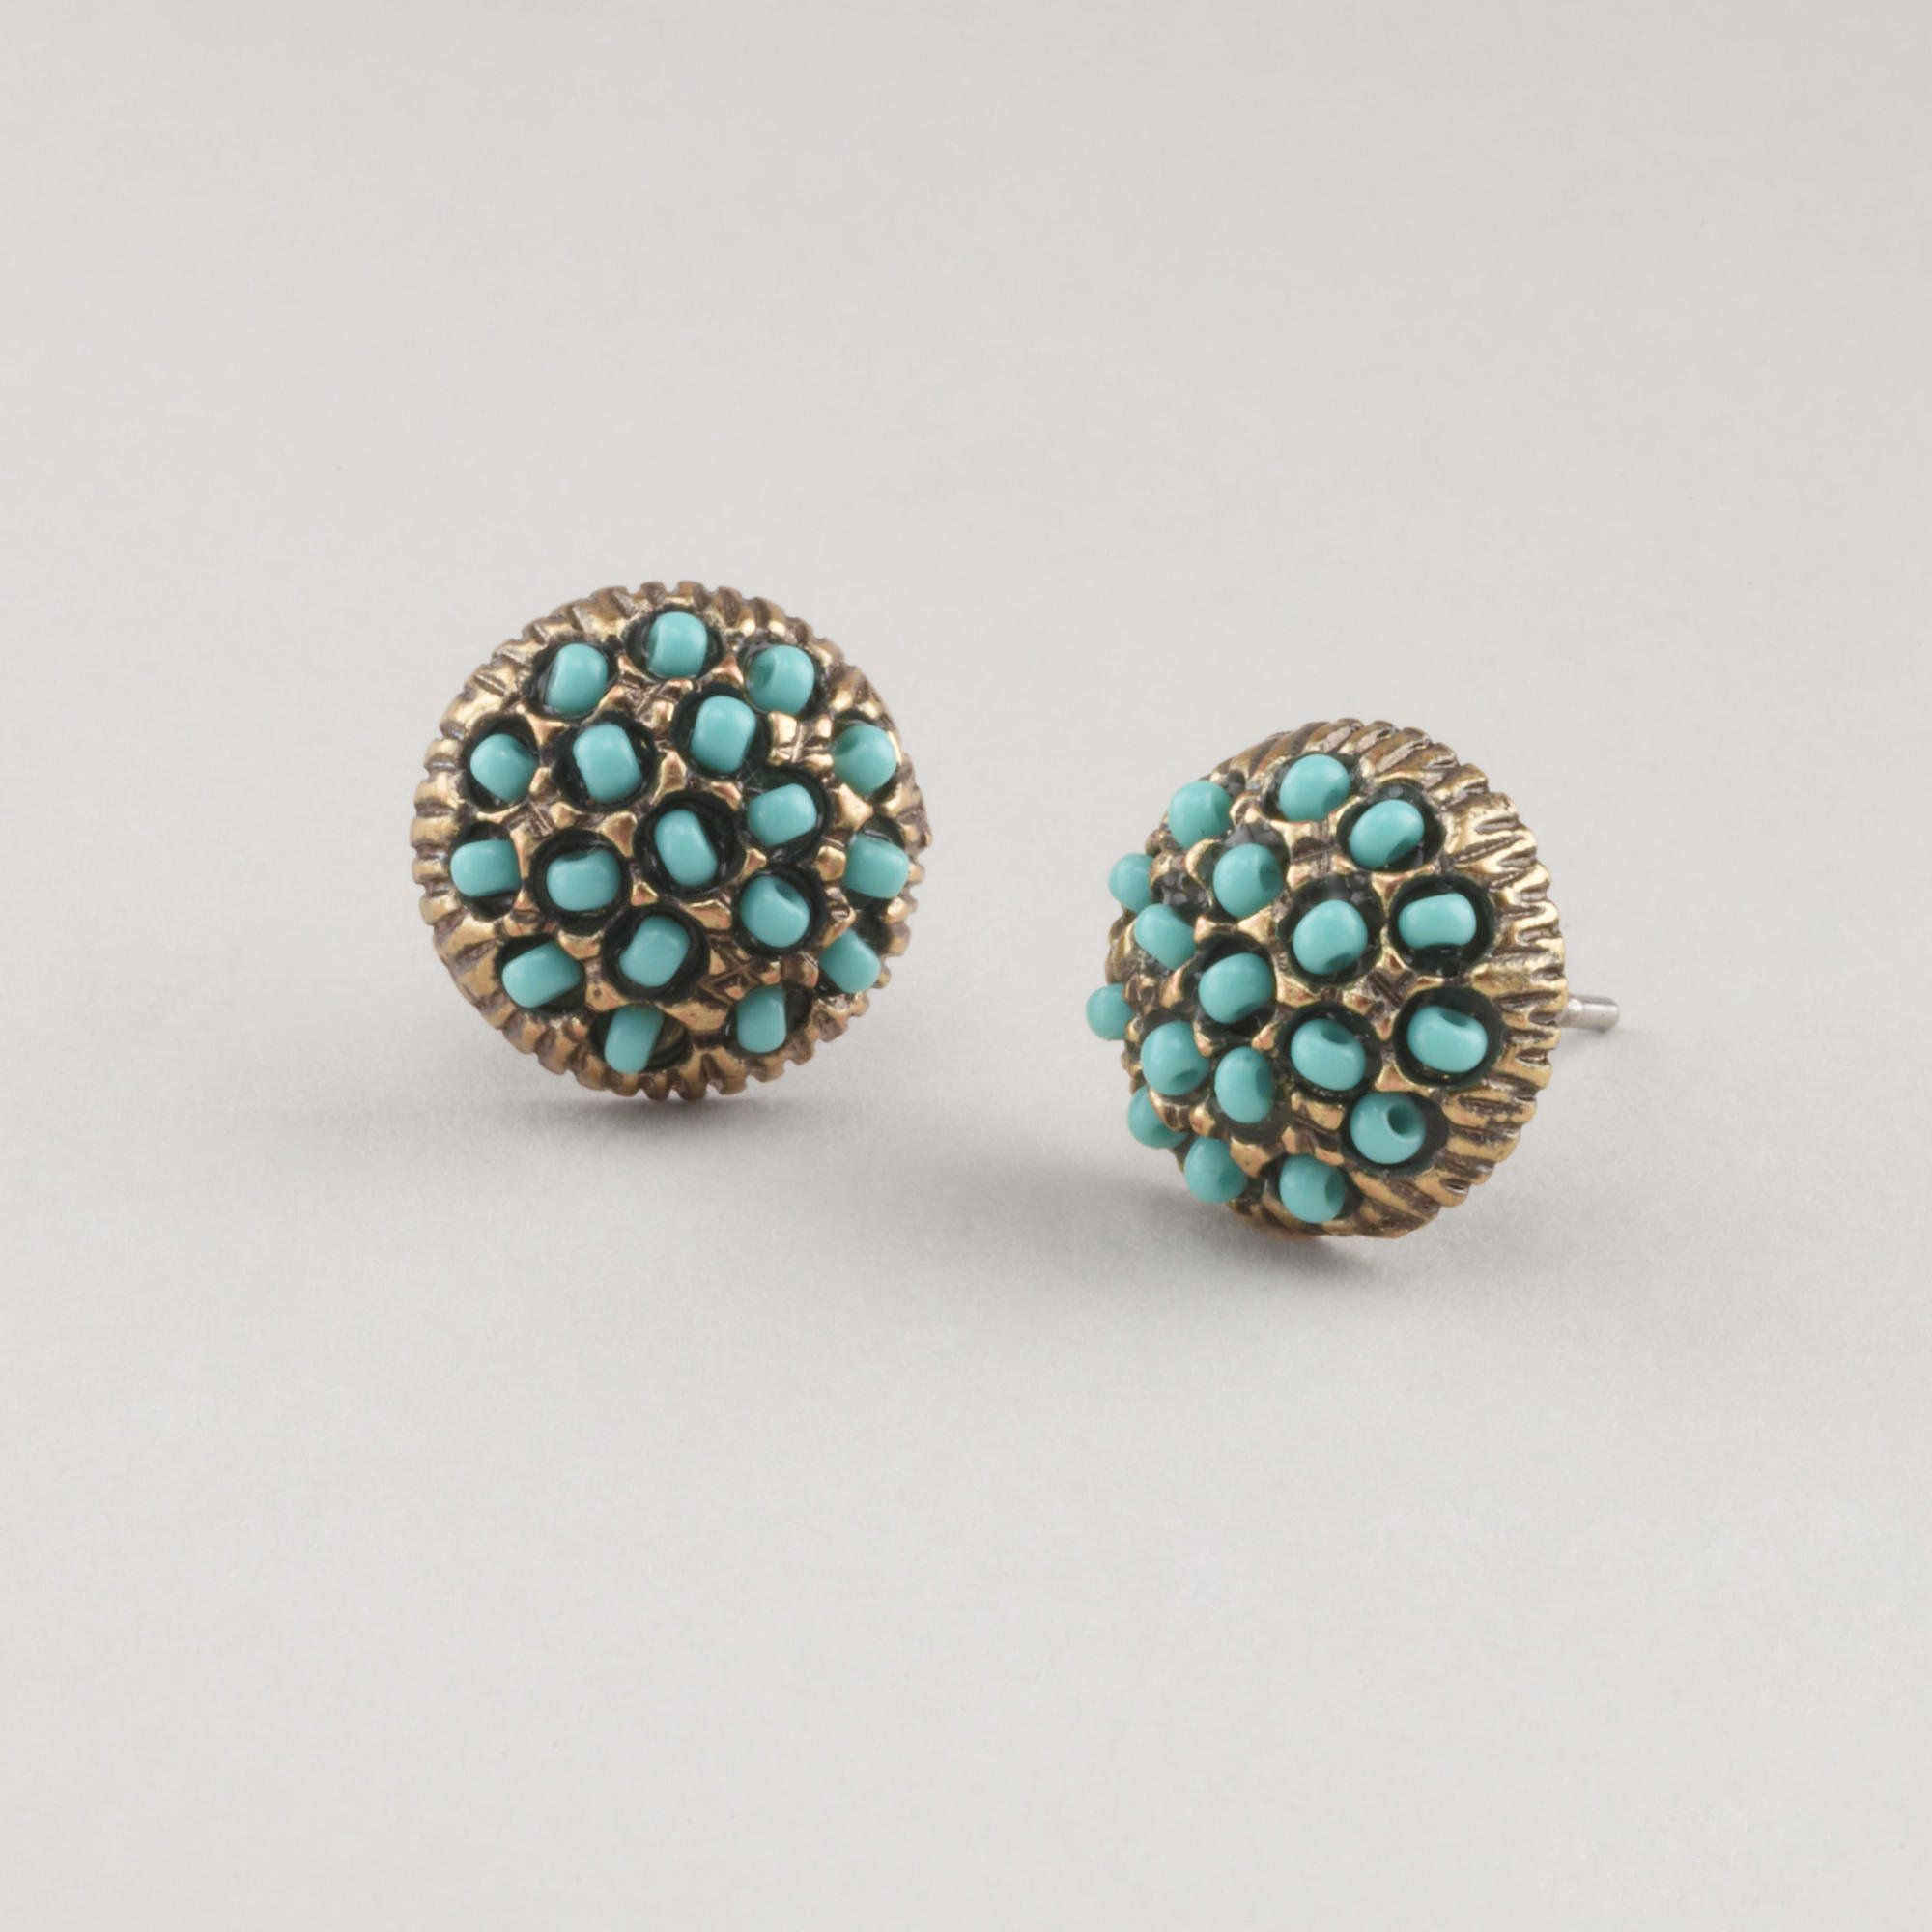 Love these earrings from world market!